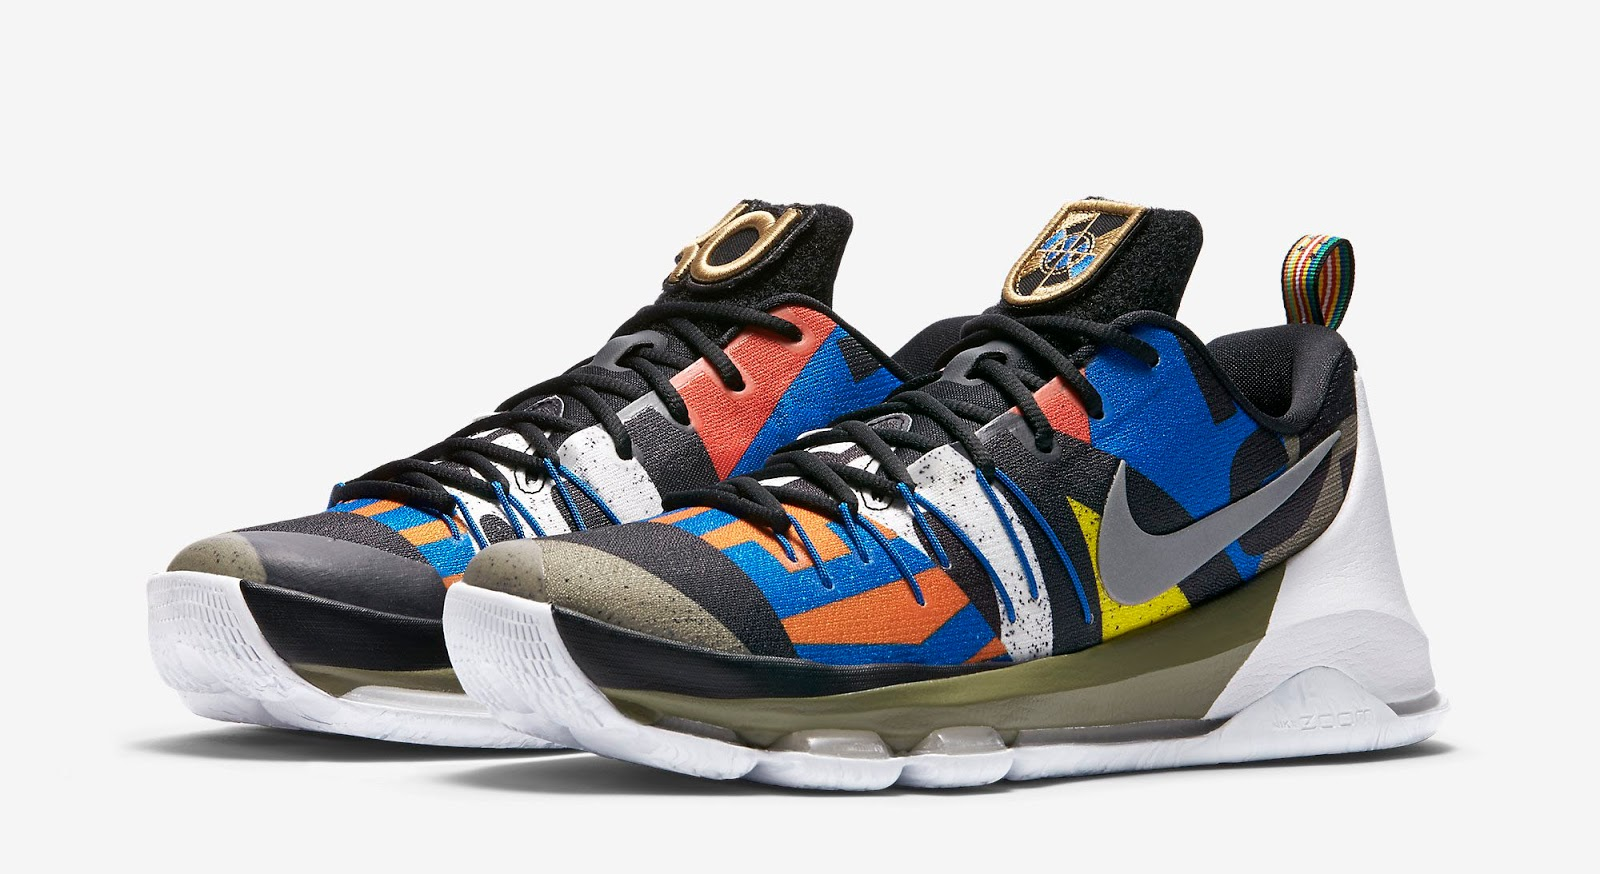 ec237f3a543 ... discount code for nike kd 8 as all star white multi color metallic  silver black release